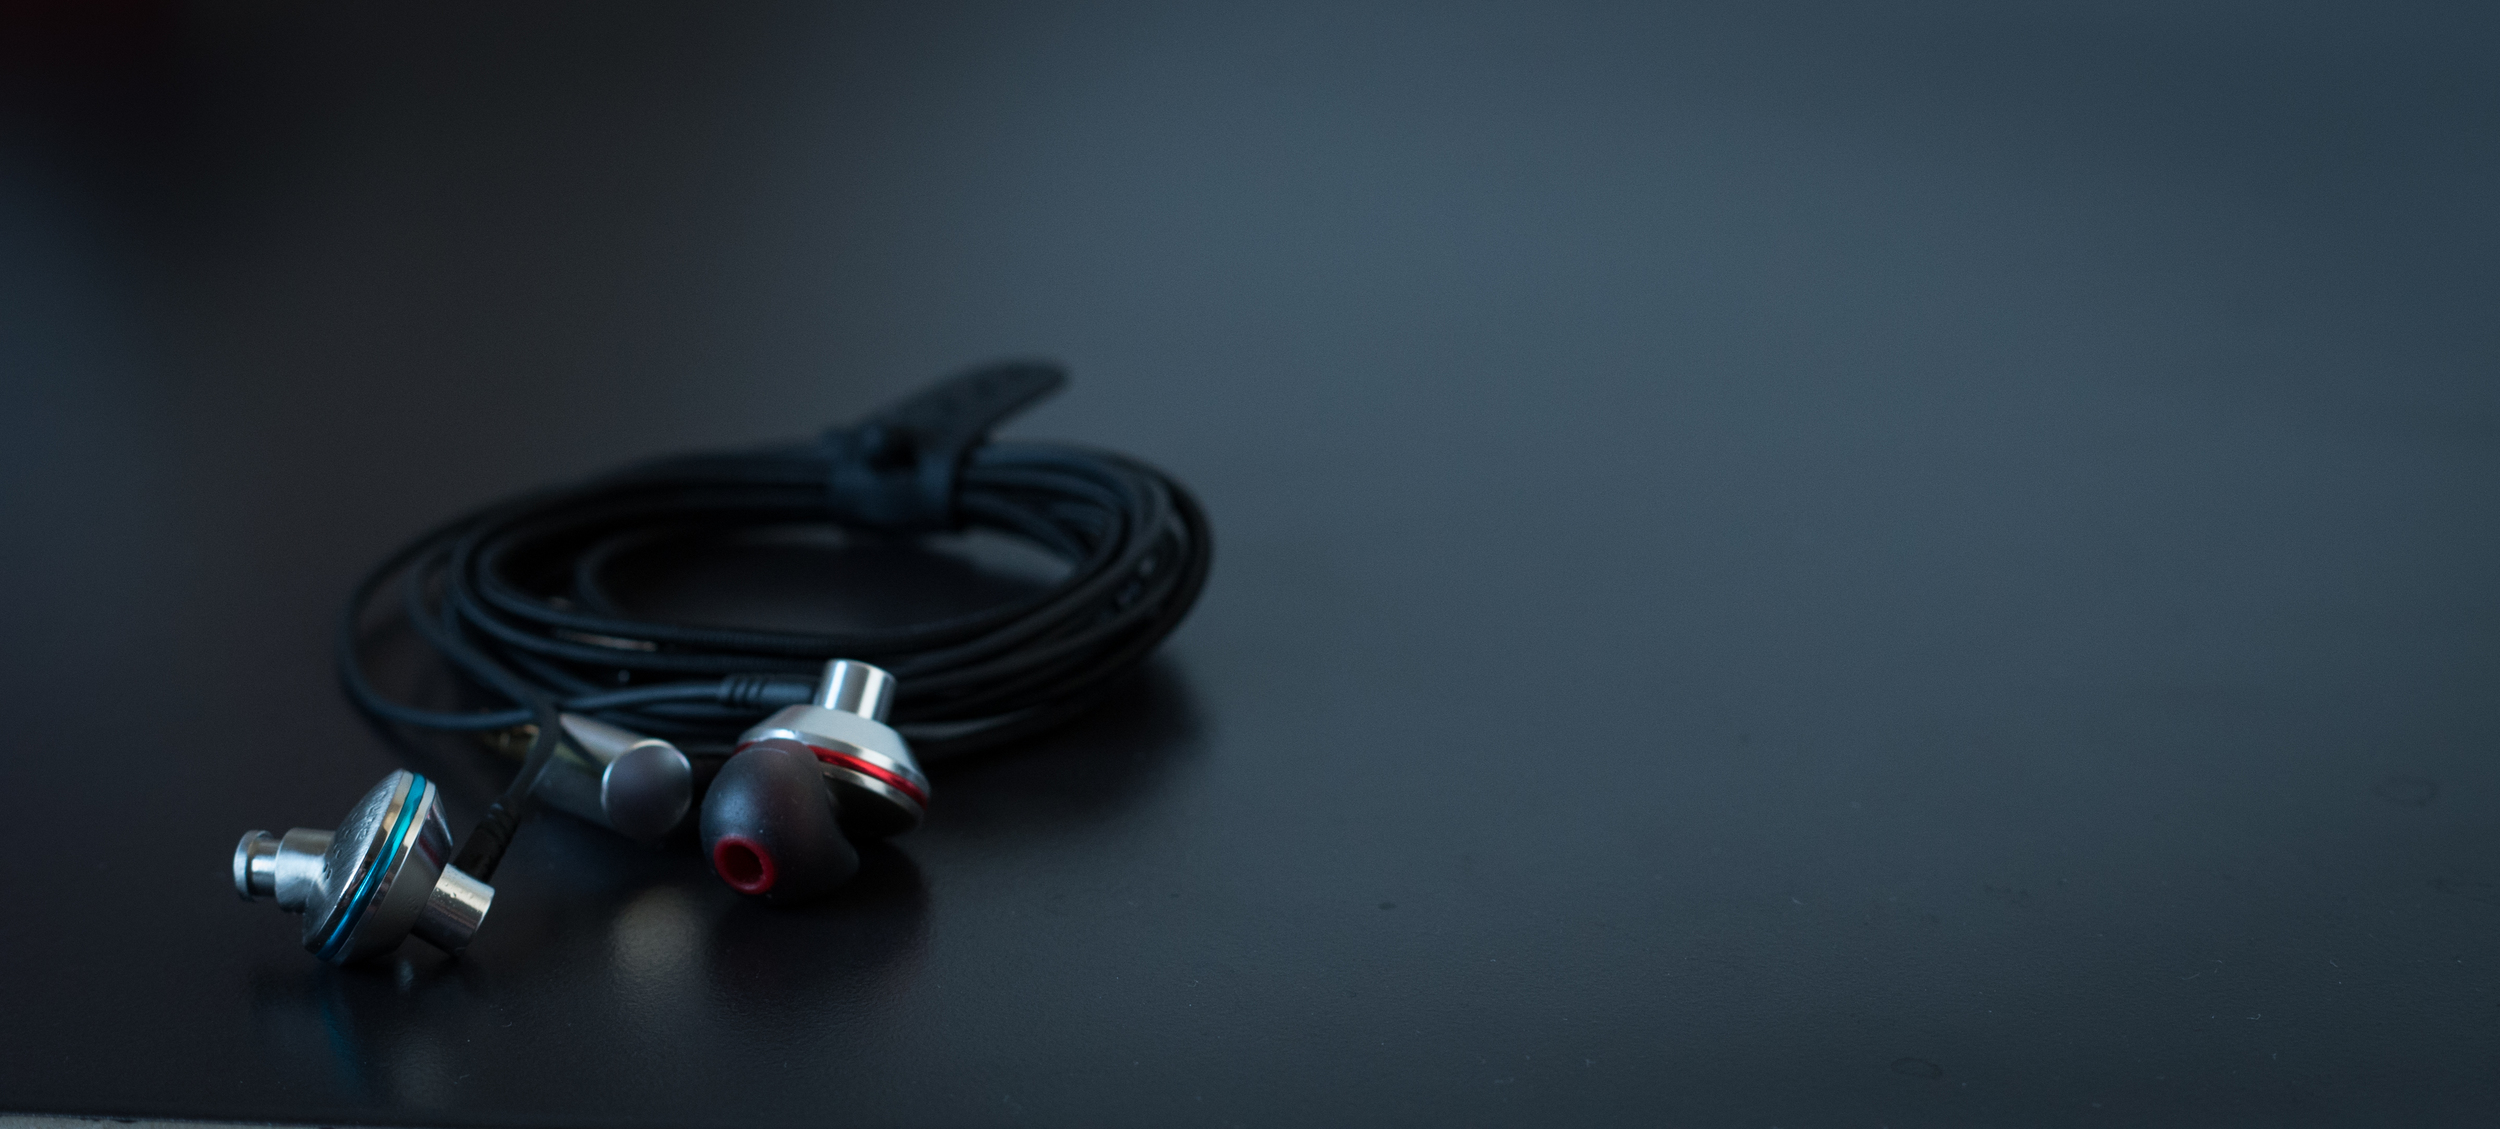 Dunu Titan earbuds are an old school design modernized with new technology in the way of a stunning new 15mm dynamic driver.